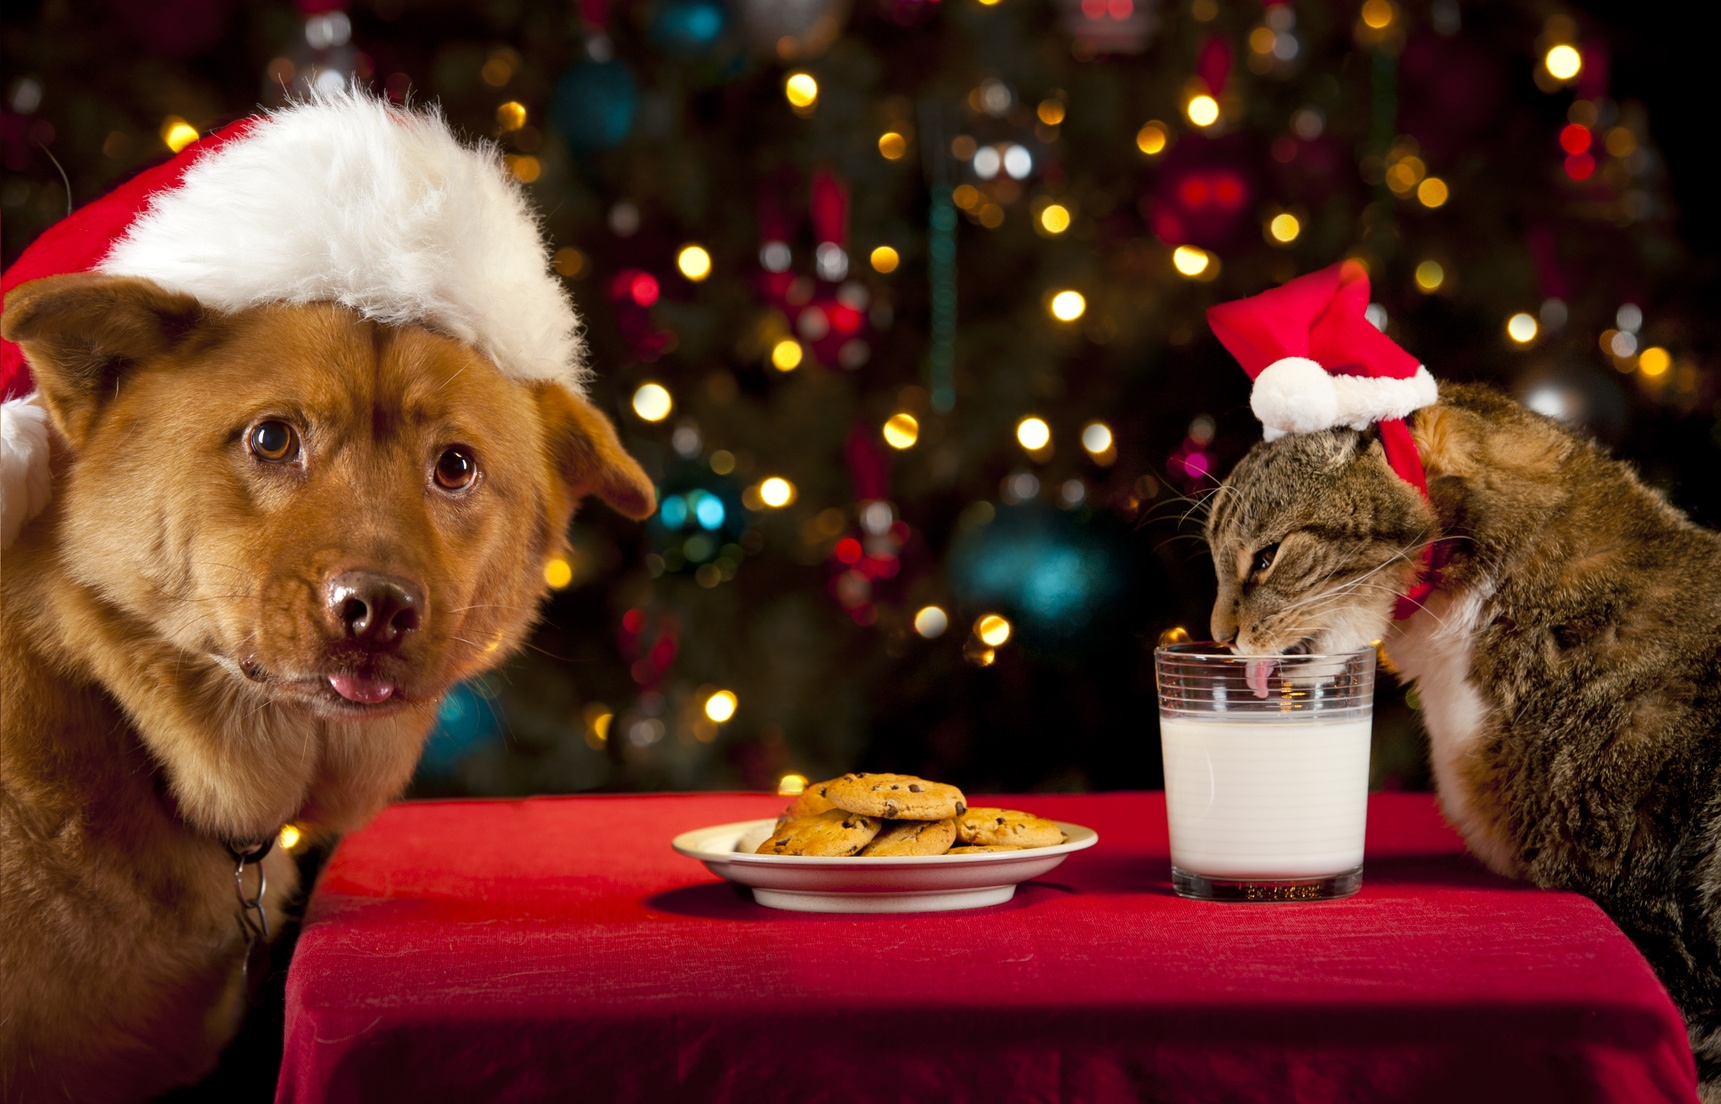 Christmas Cookies Recipe for Dogs